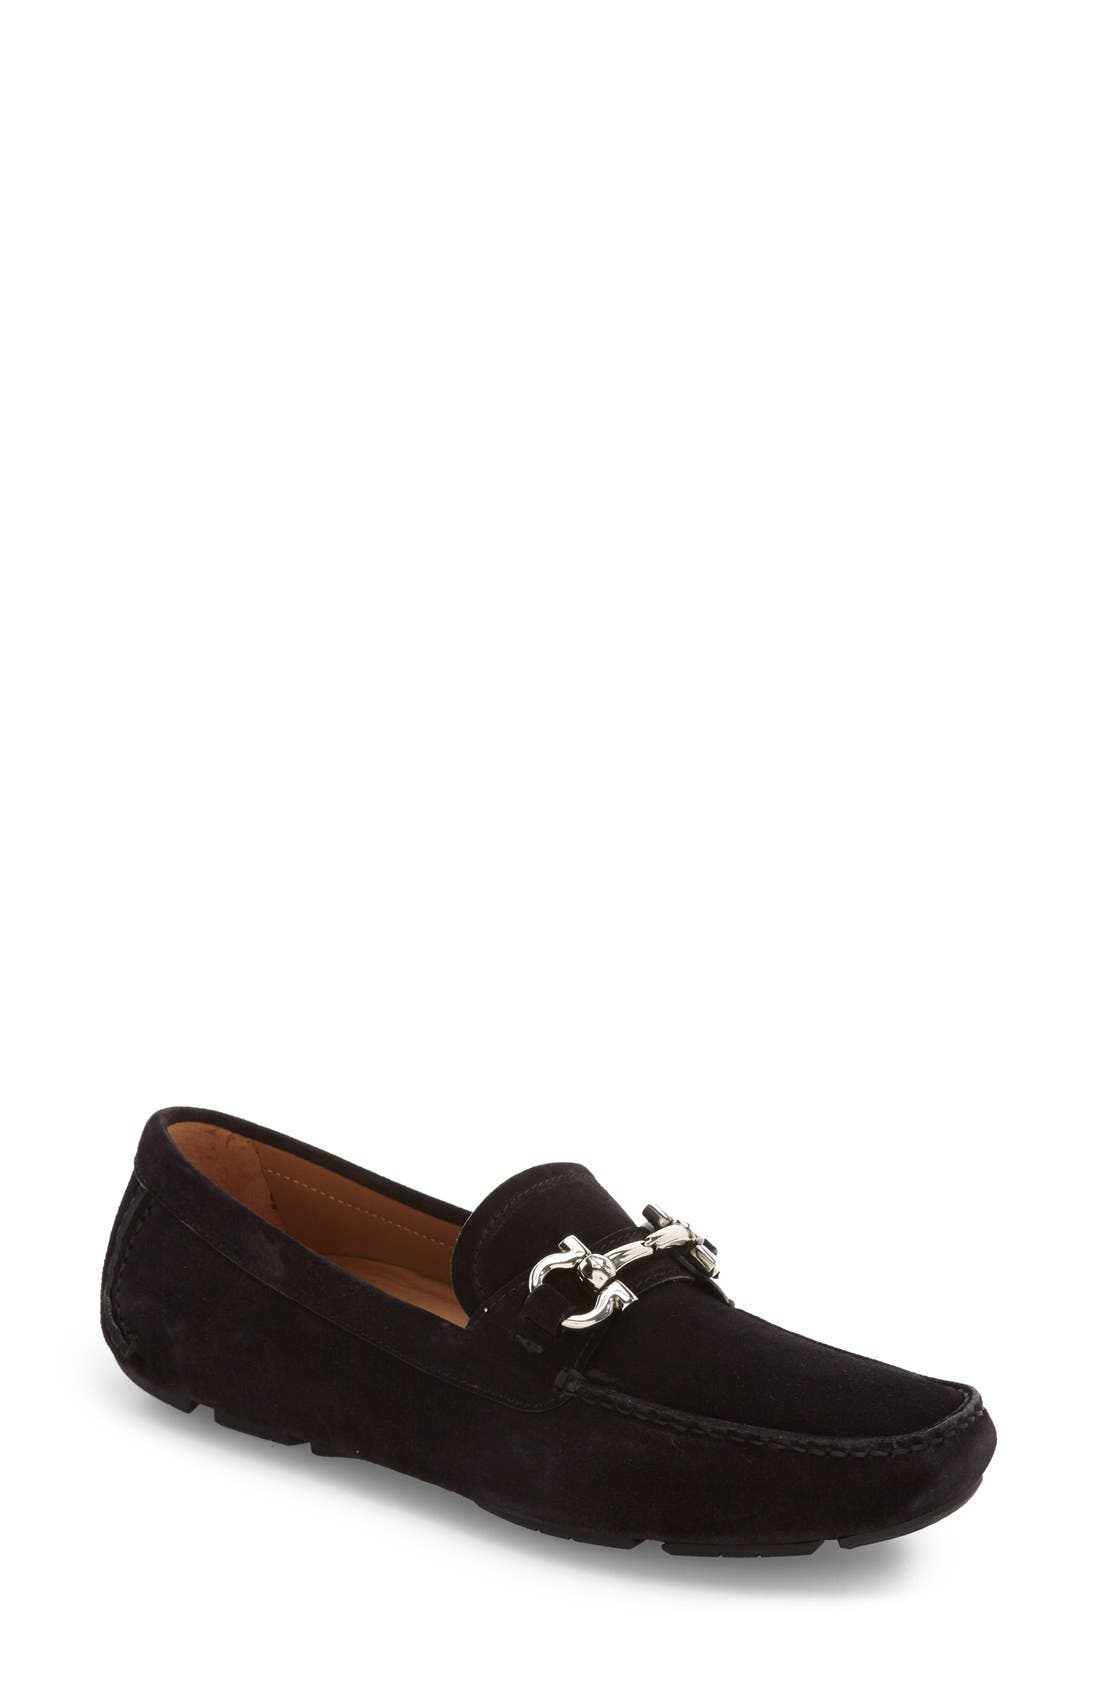 Parigi Loafer,                             Main thumbnail 1, color,